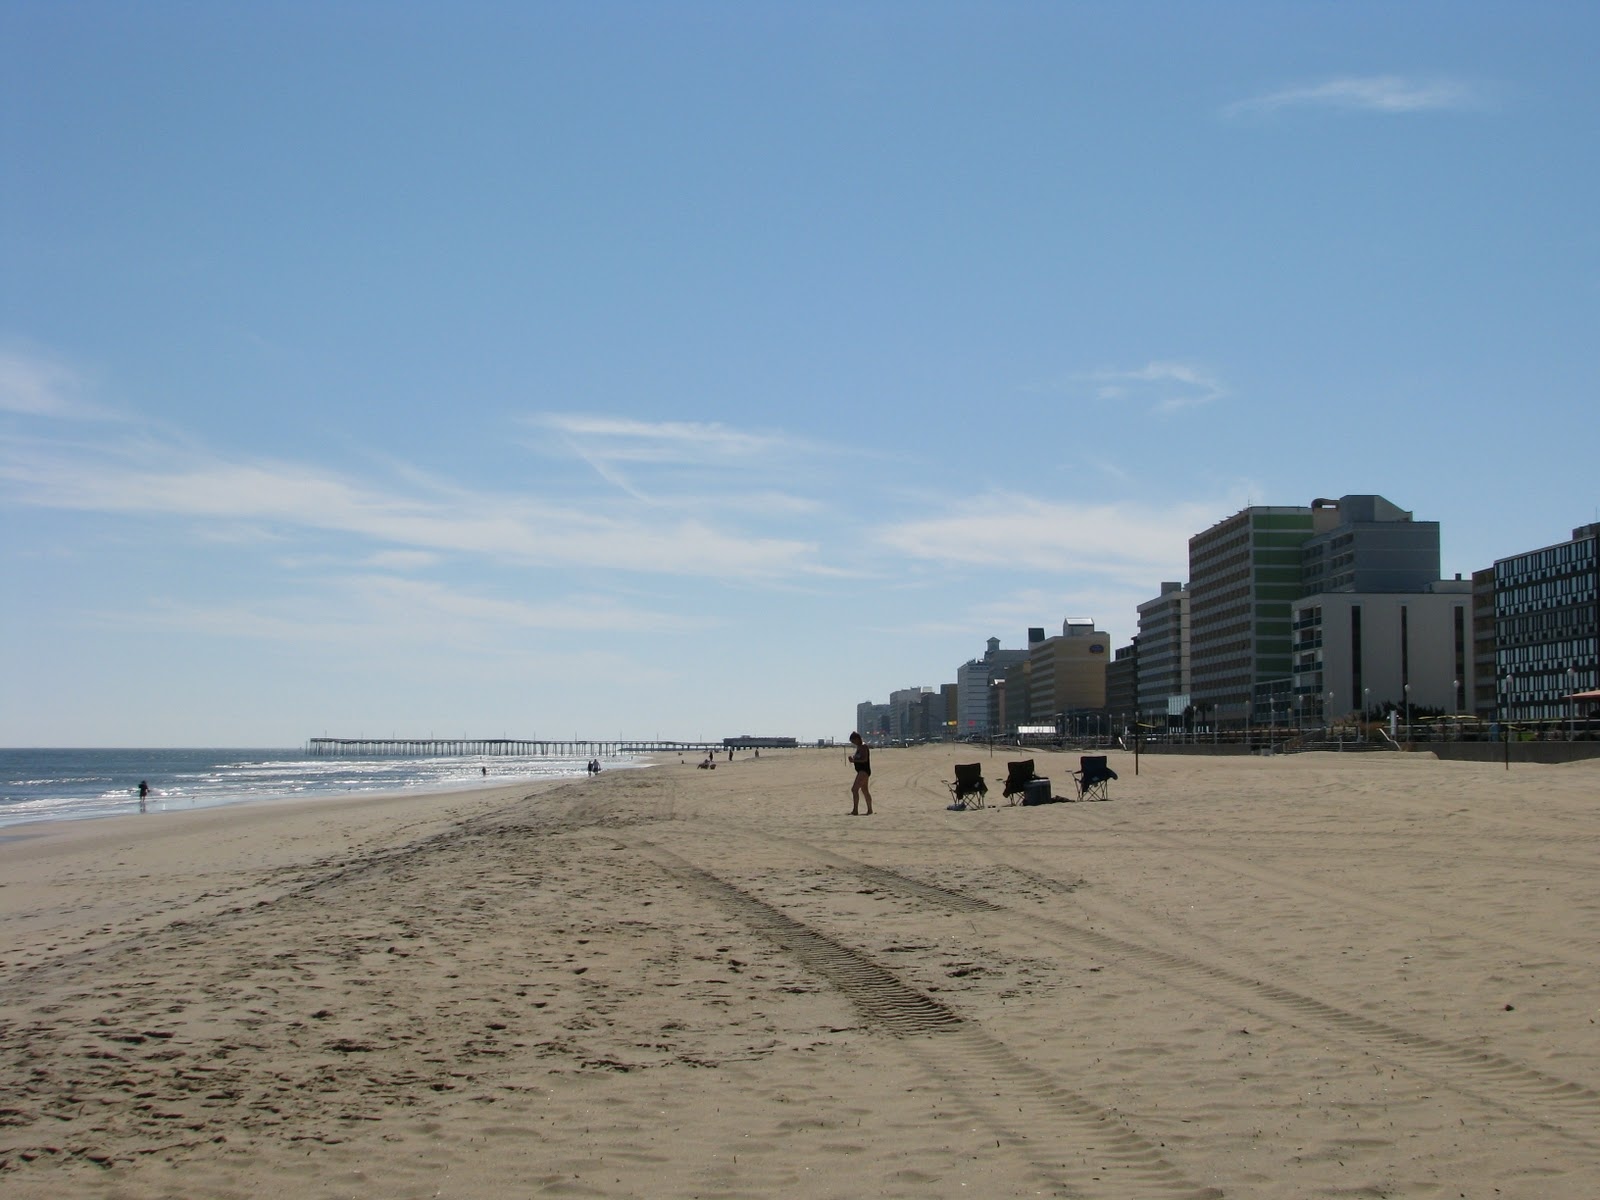 The Happy Wanderers: Virginia Beach Boardwalk Oct 25, 26, 2011